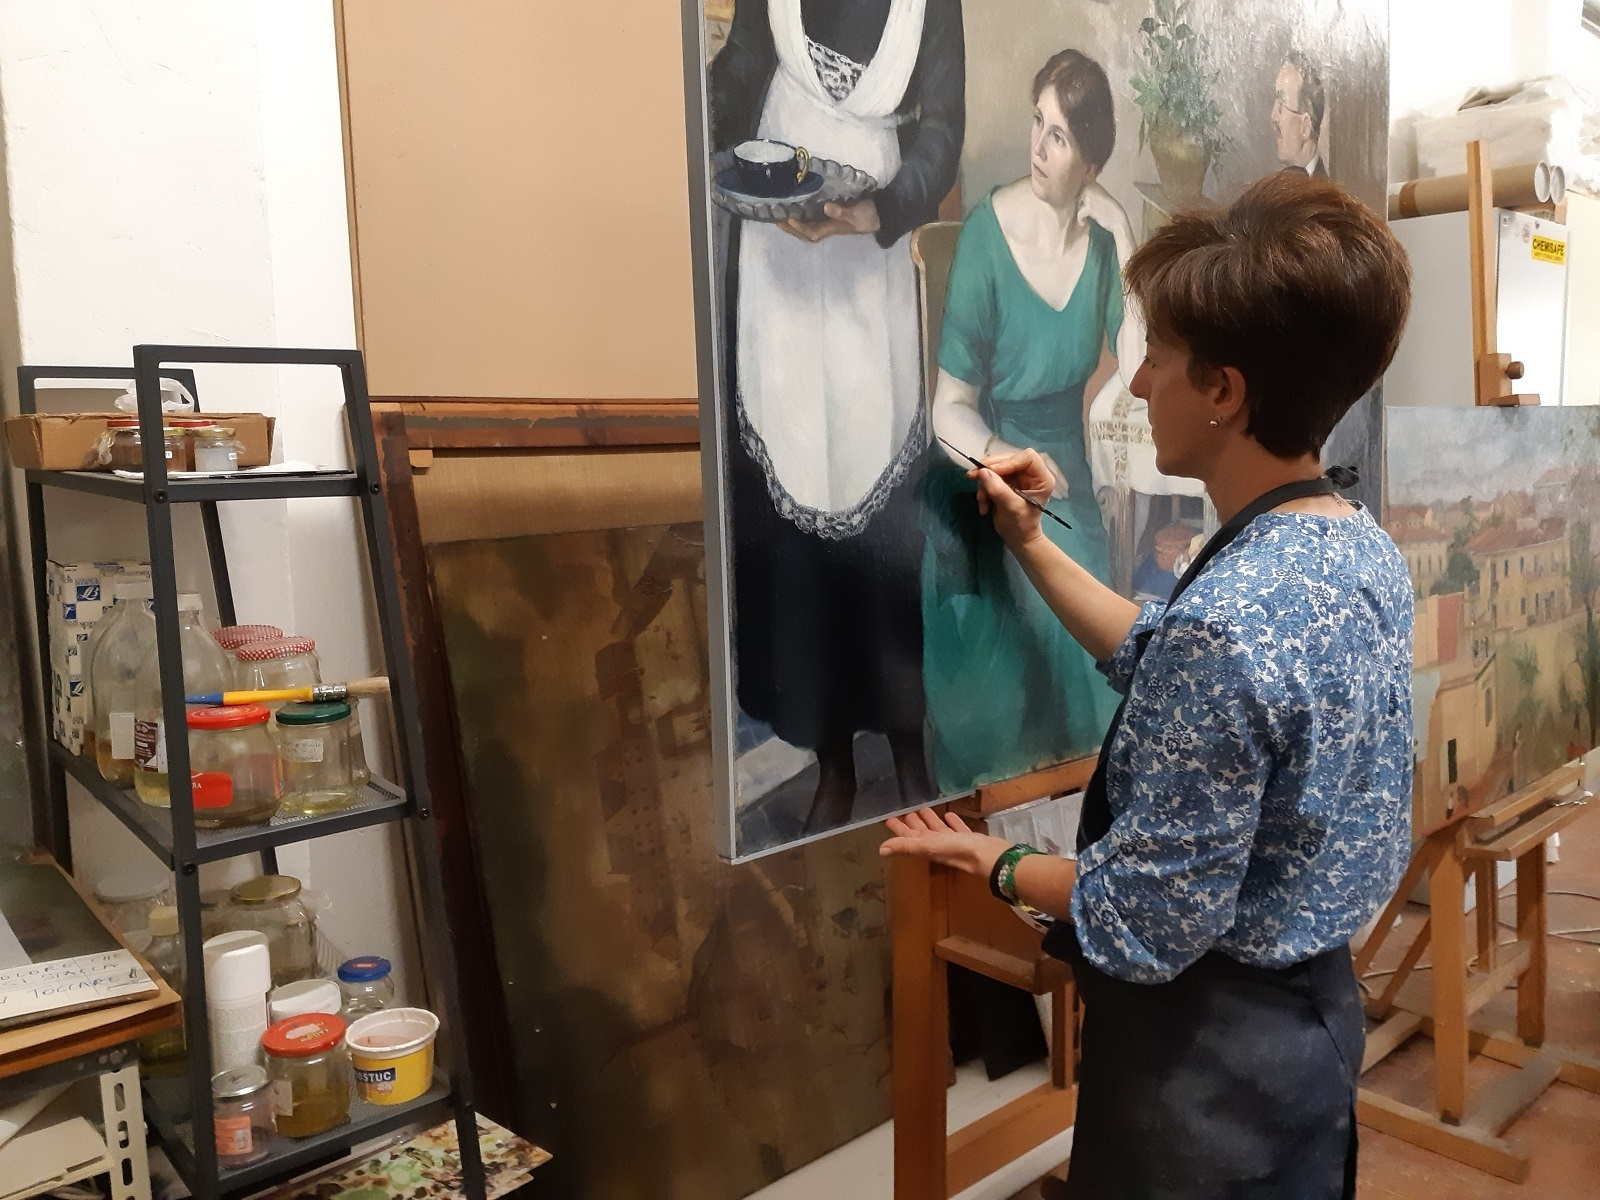 Chiara Mignani in the restoration studio with Morelli's painting